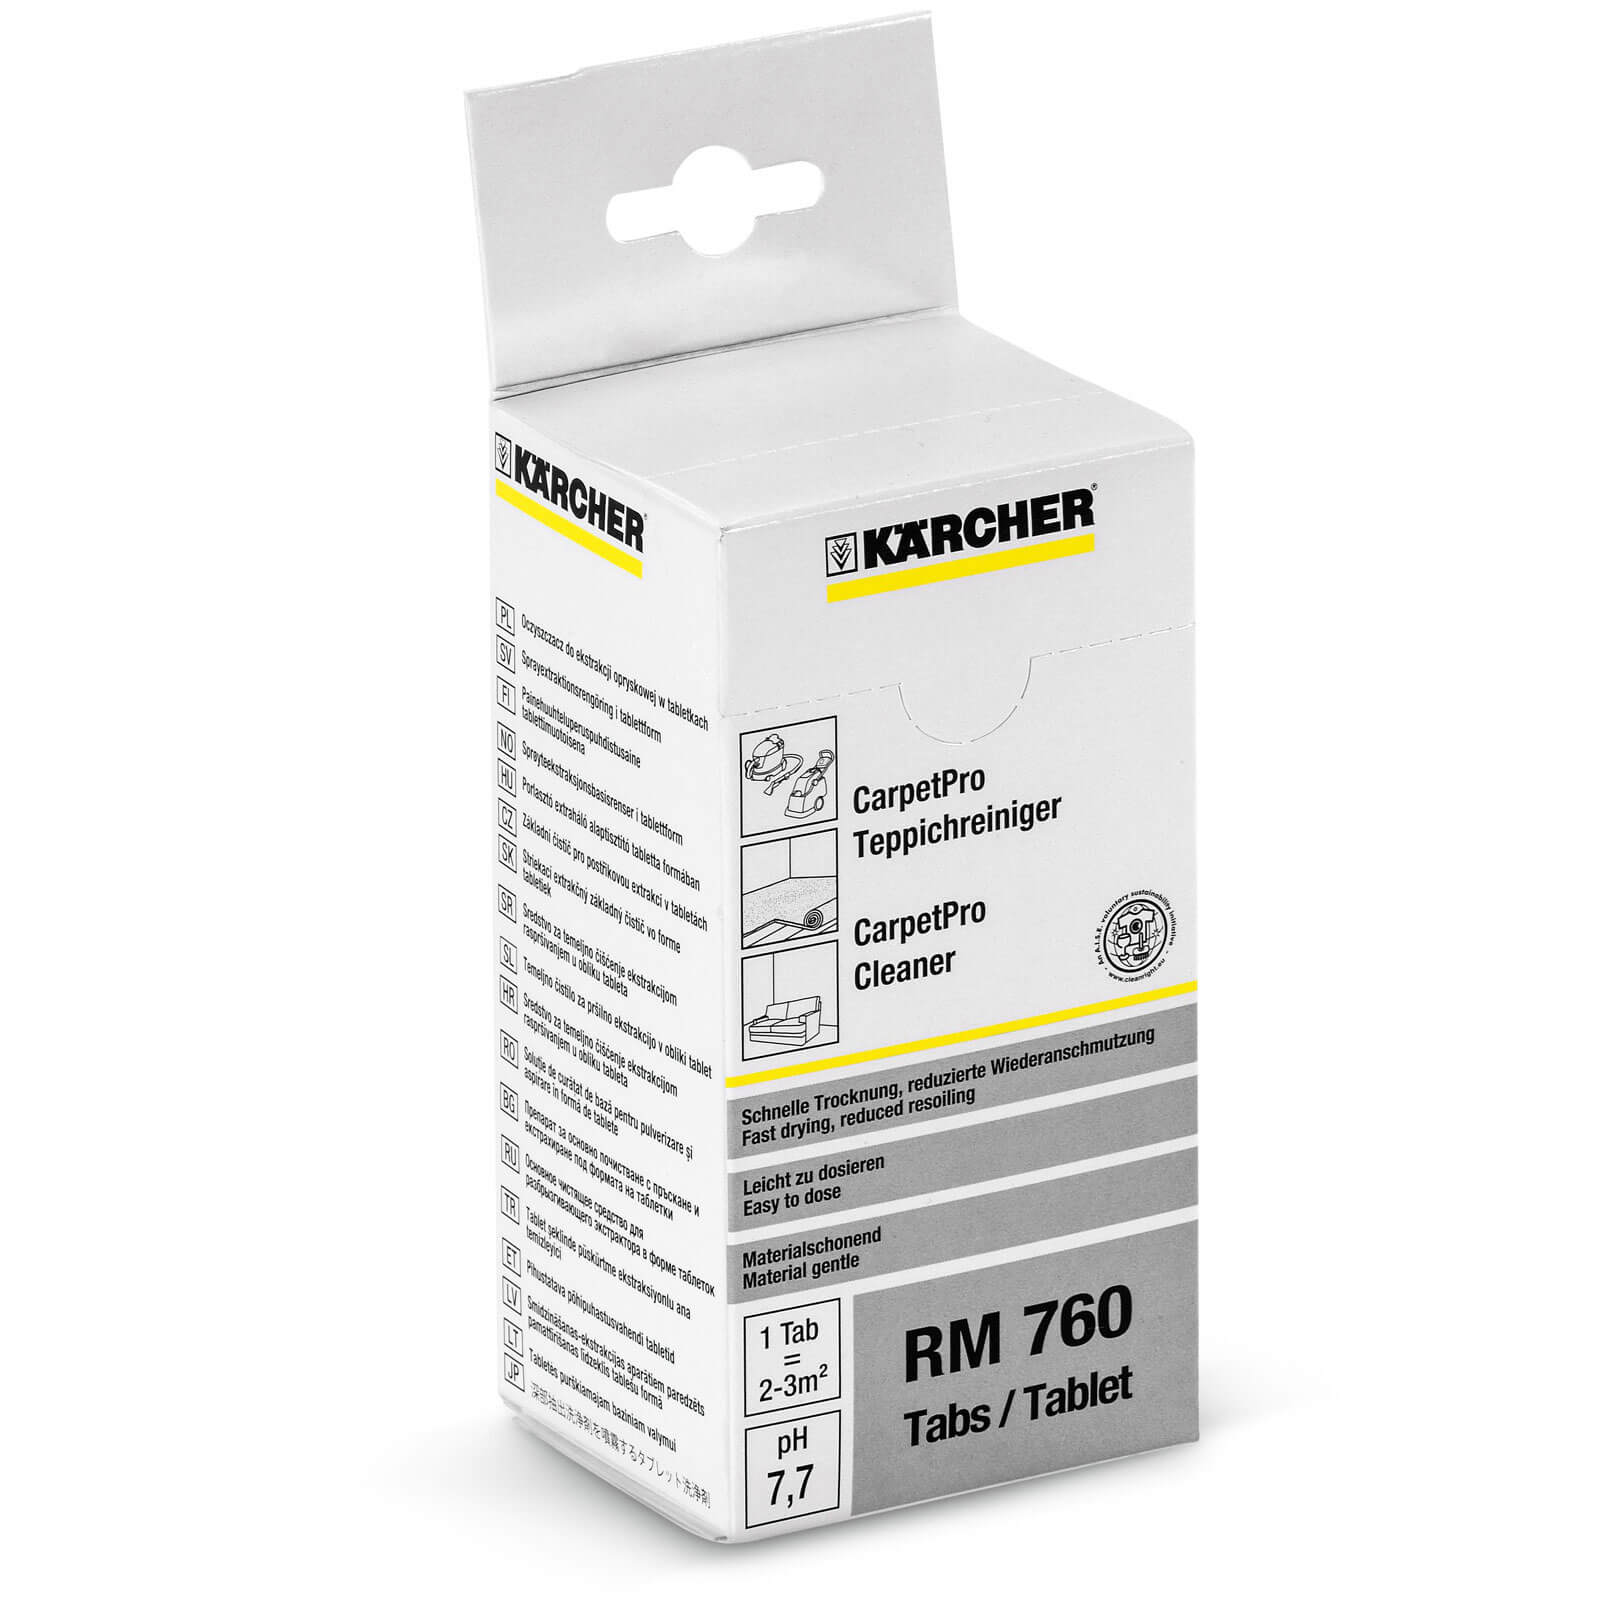 Karcher RM 760 Pro Carpet Cleaner Tablets Pack of 16